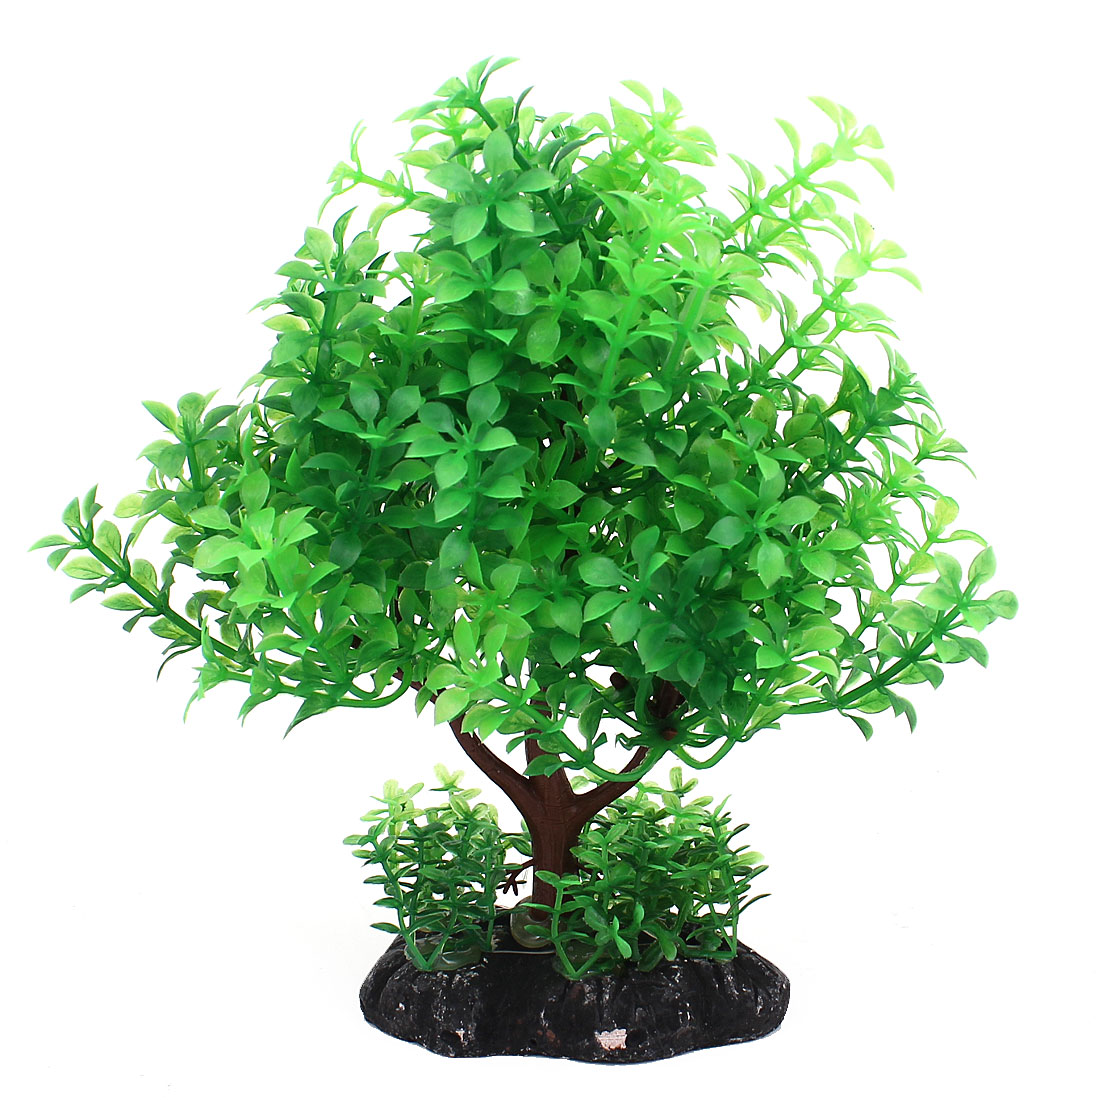 "7"" 18cm Height Green Plastic Manmade Aquarium Plant Underwater Grass Decor w Ceramic Base for Fishbowl"